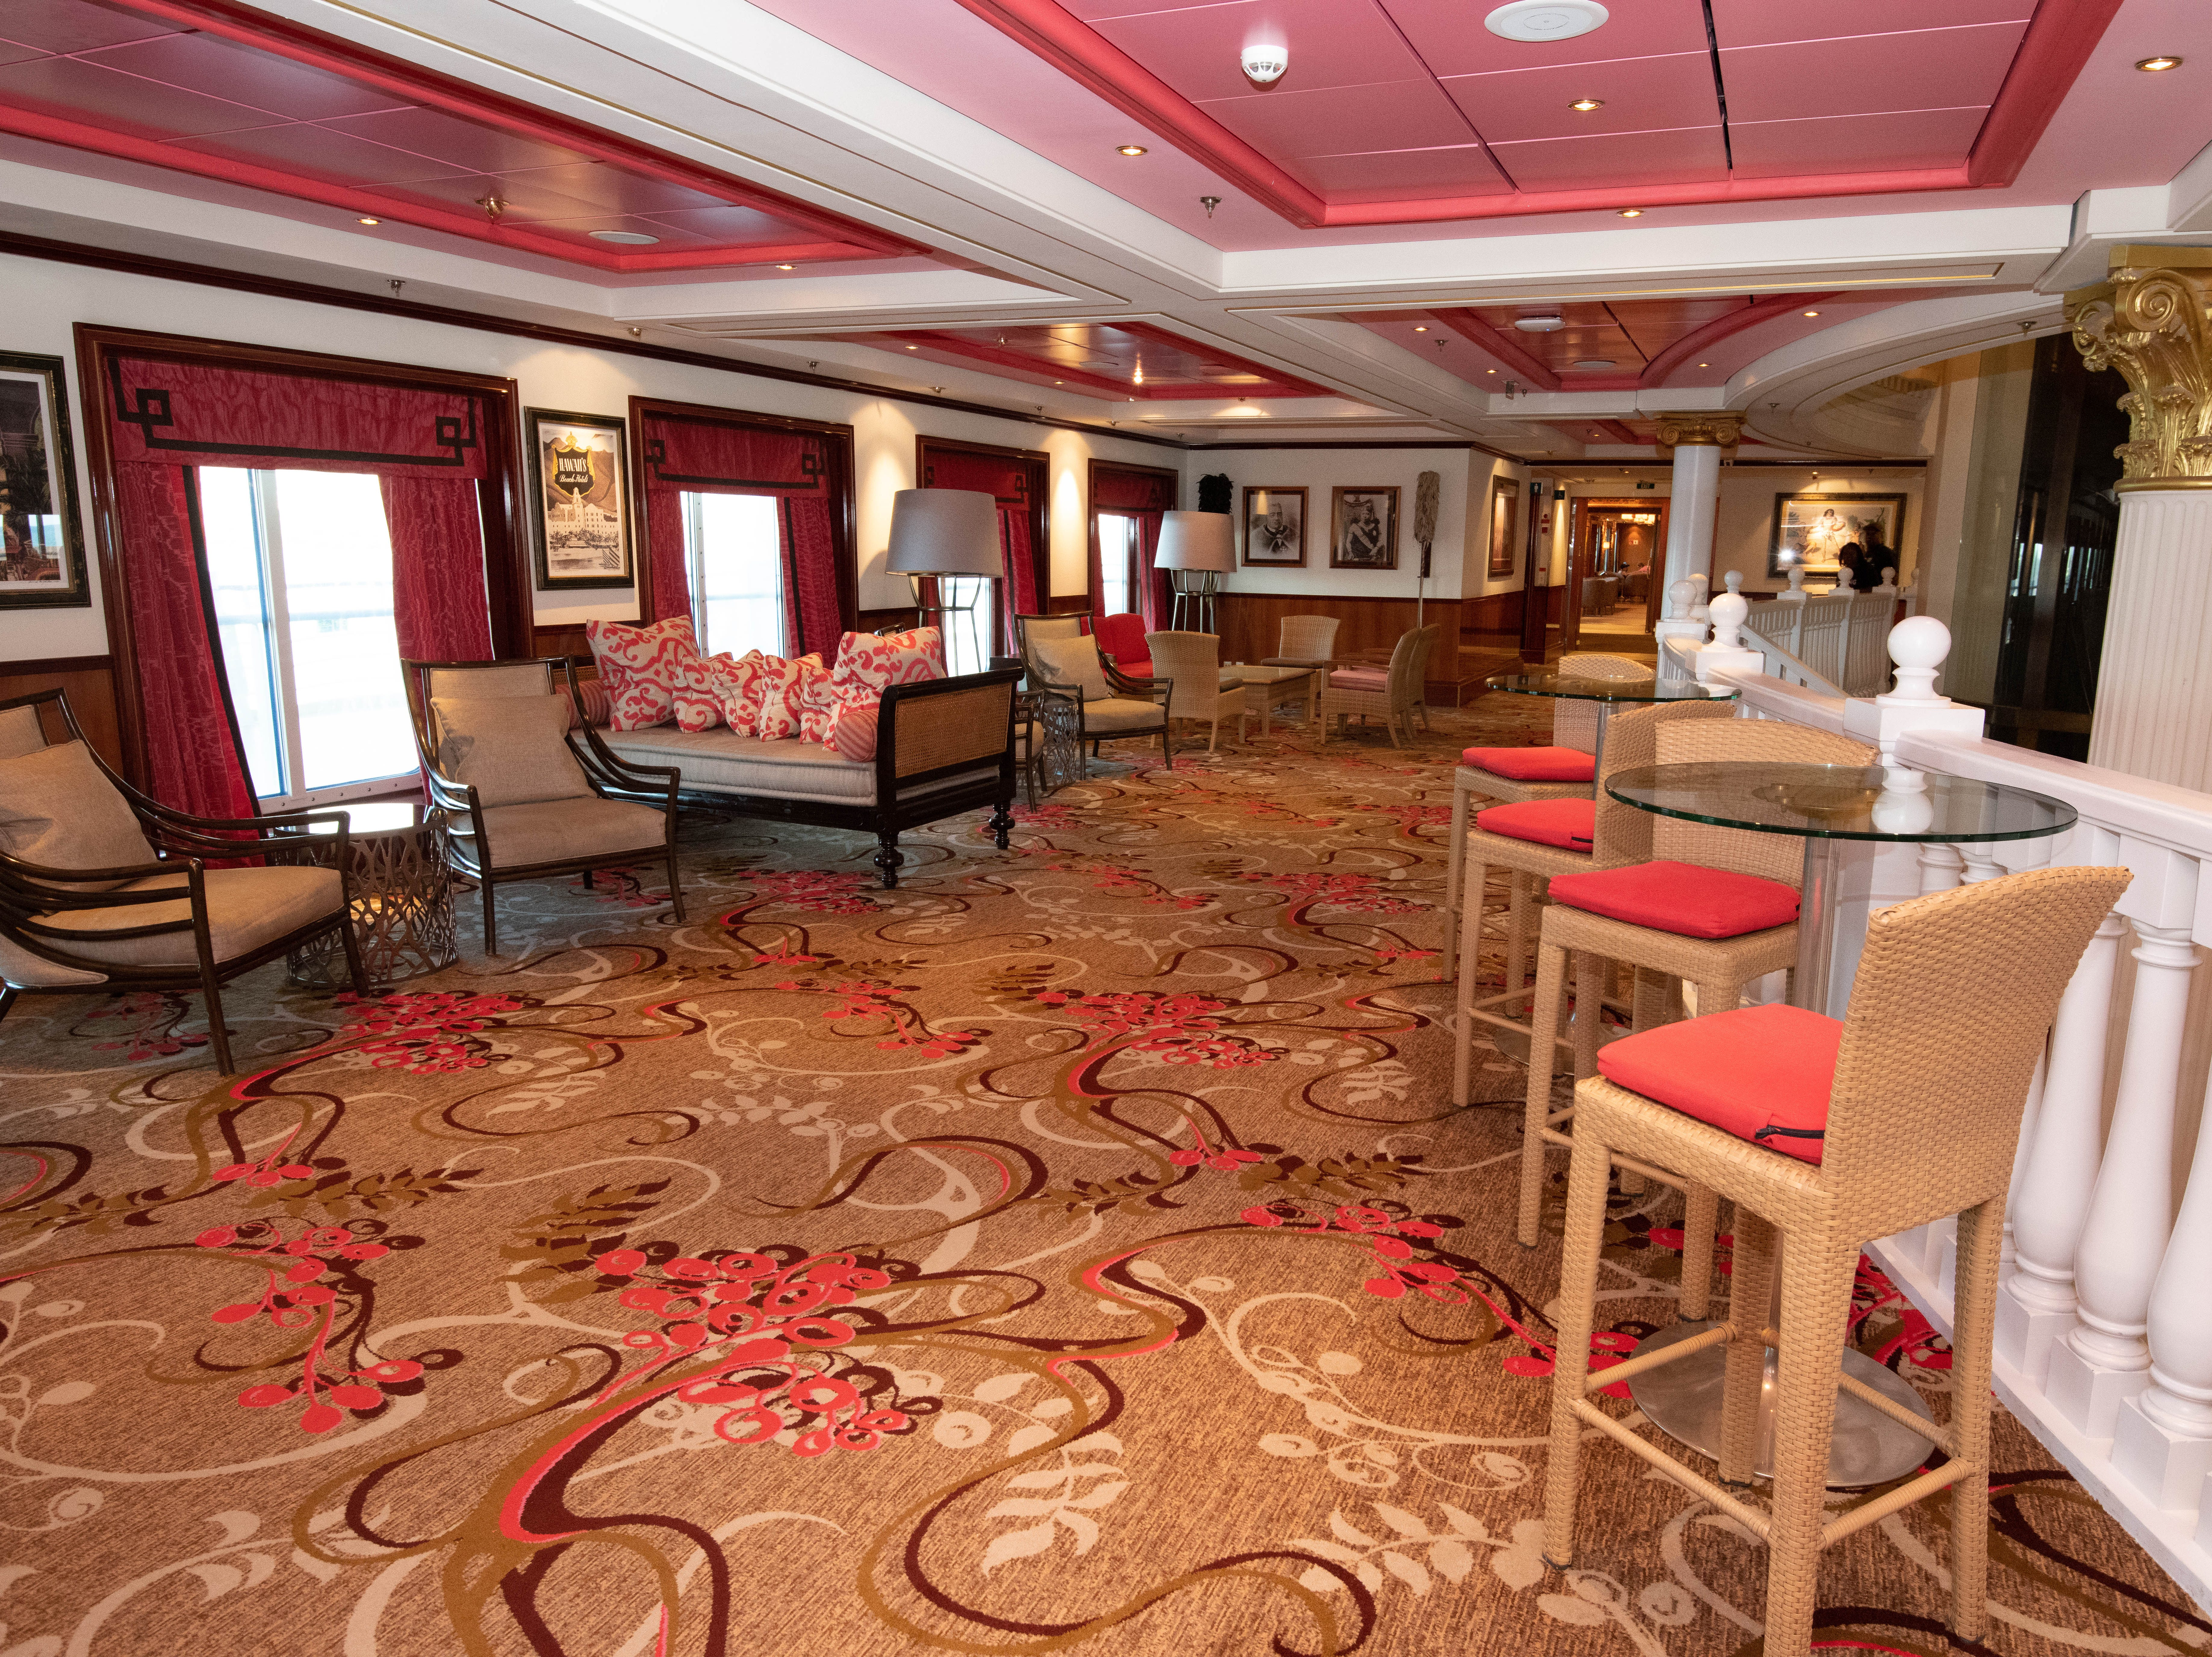 Overlooking the Capitol Atrium on Deck 6 is a large lounge area known as Pink's Champagne Bar.